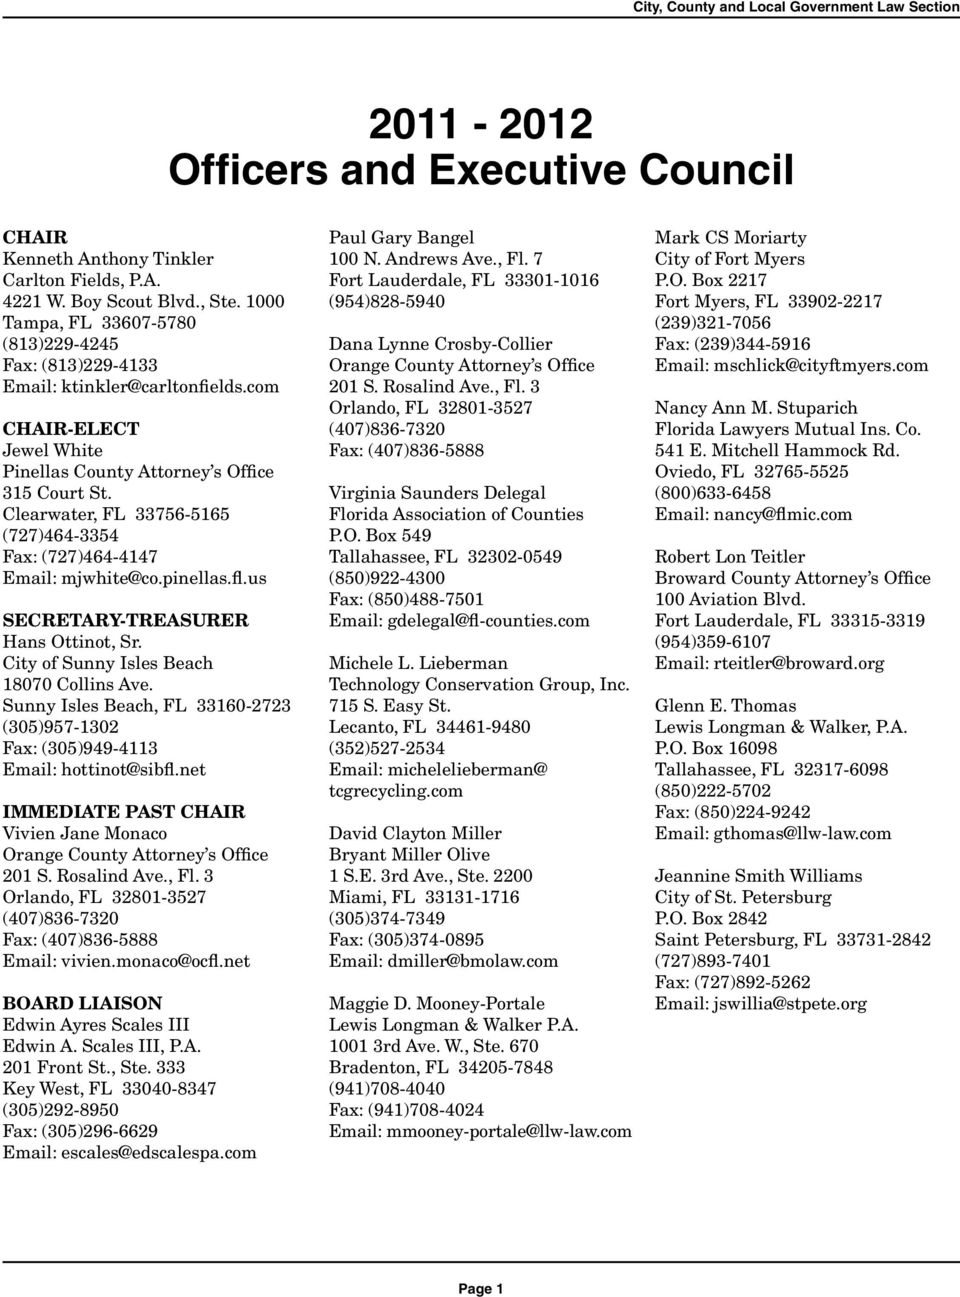 City County Local Government Law Section Membership Directory Pdf Florida Mediation Locations Ken Bowen Esq Pinellas Clearwater Fl 33756 5165 727464 3354 Fax 727